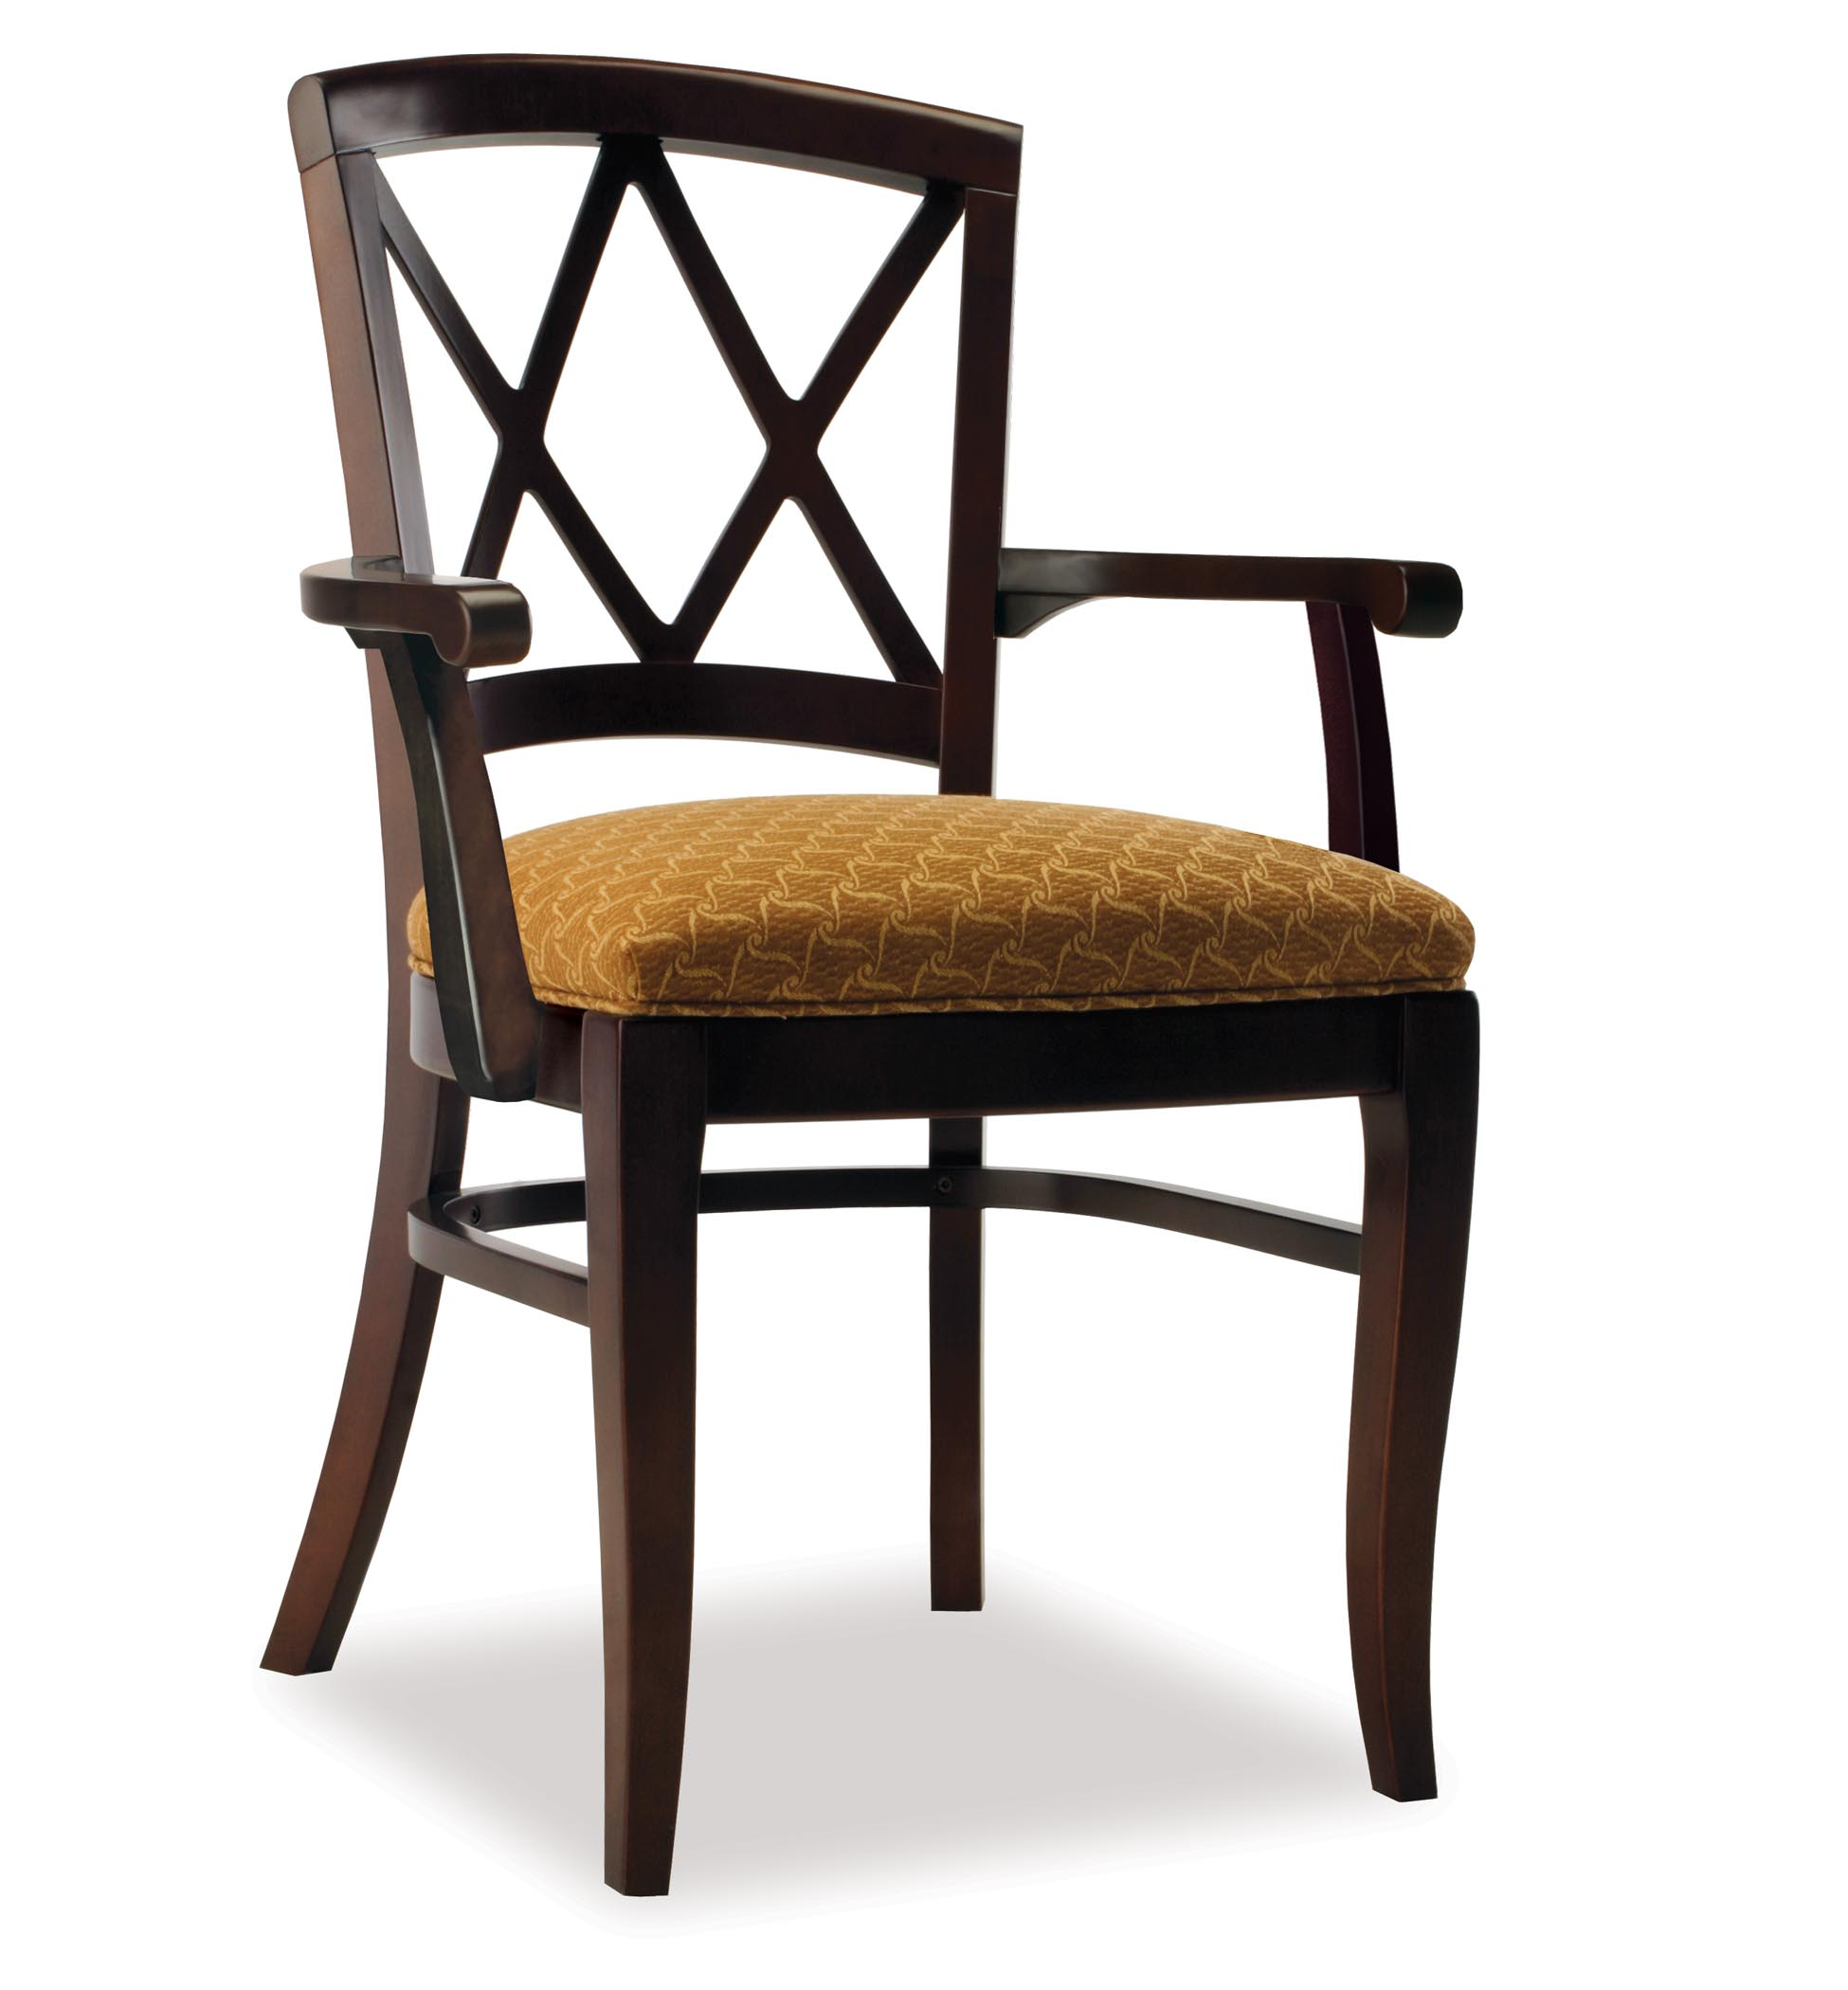 Wooden Arm Chair 4311 1 Wood Arm Chair